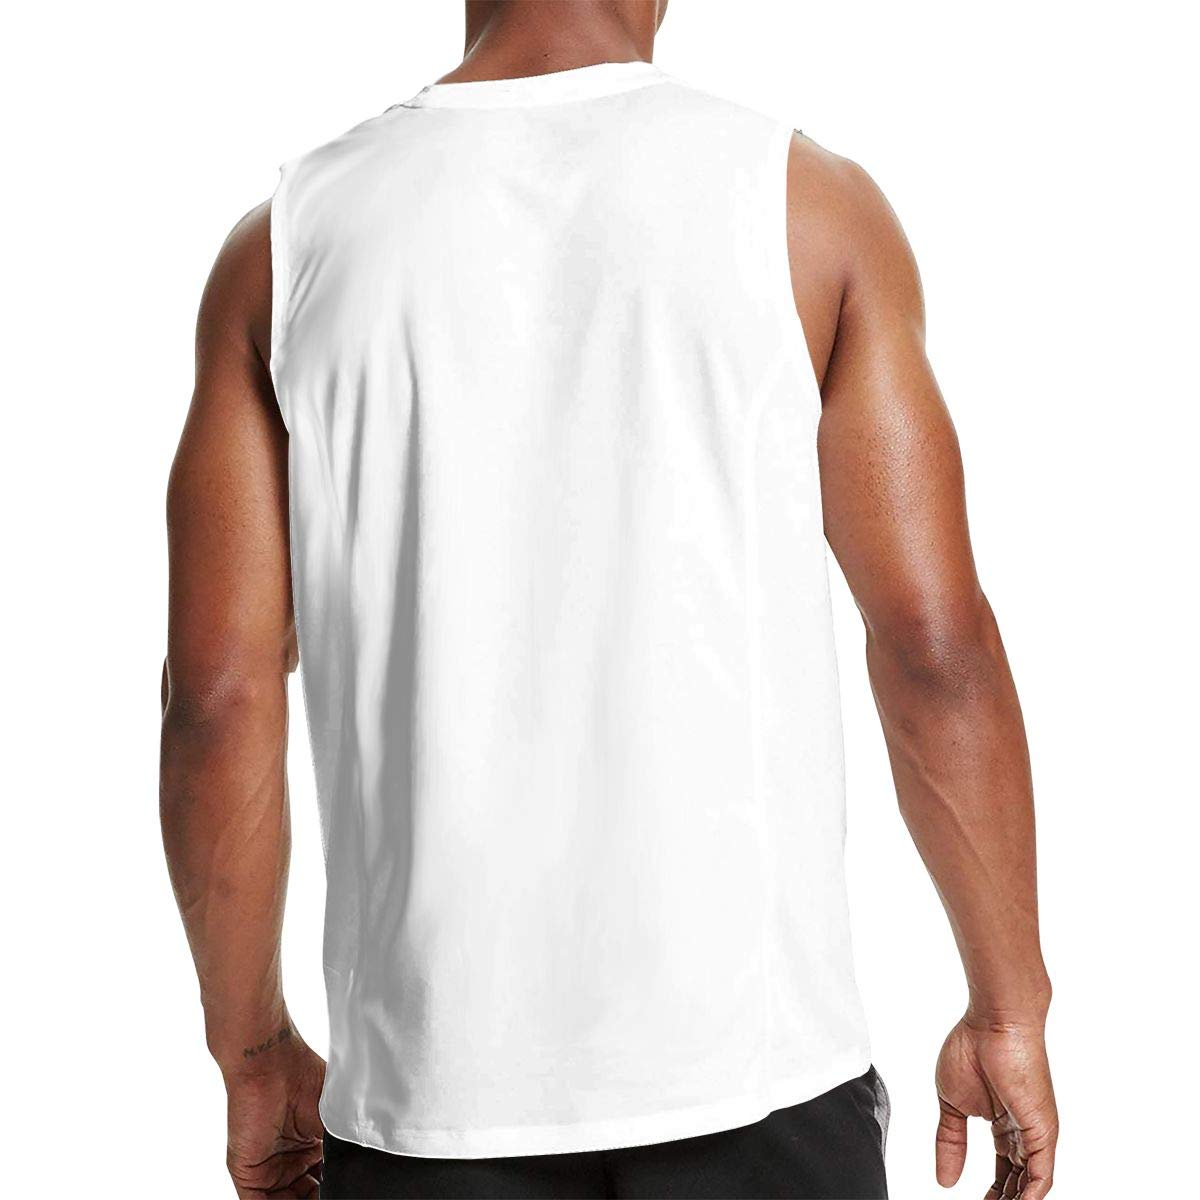 Met Tank Tops for Men Stretchy Sleeveless Athletic Shirts New York Baseball Mr